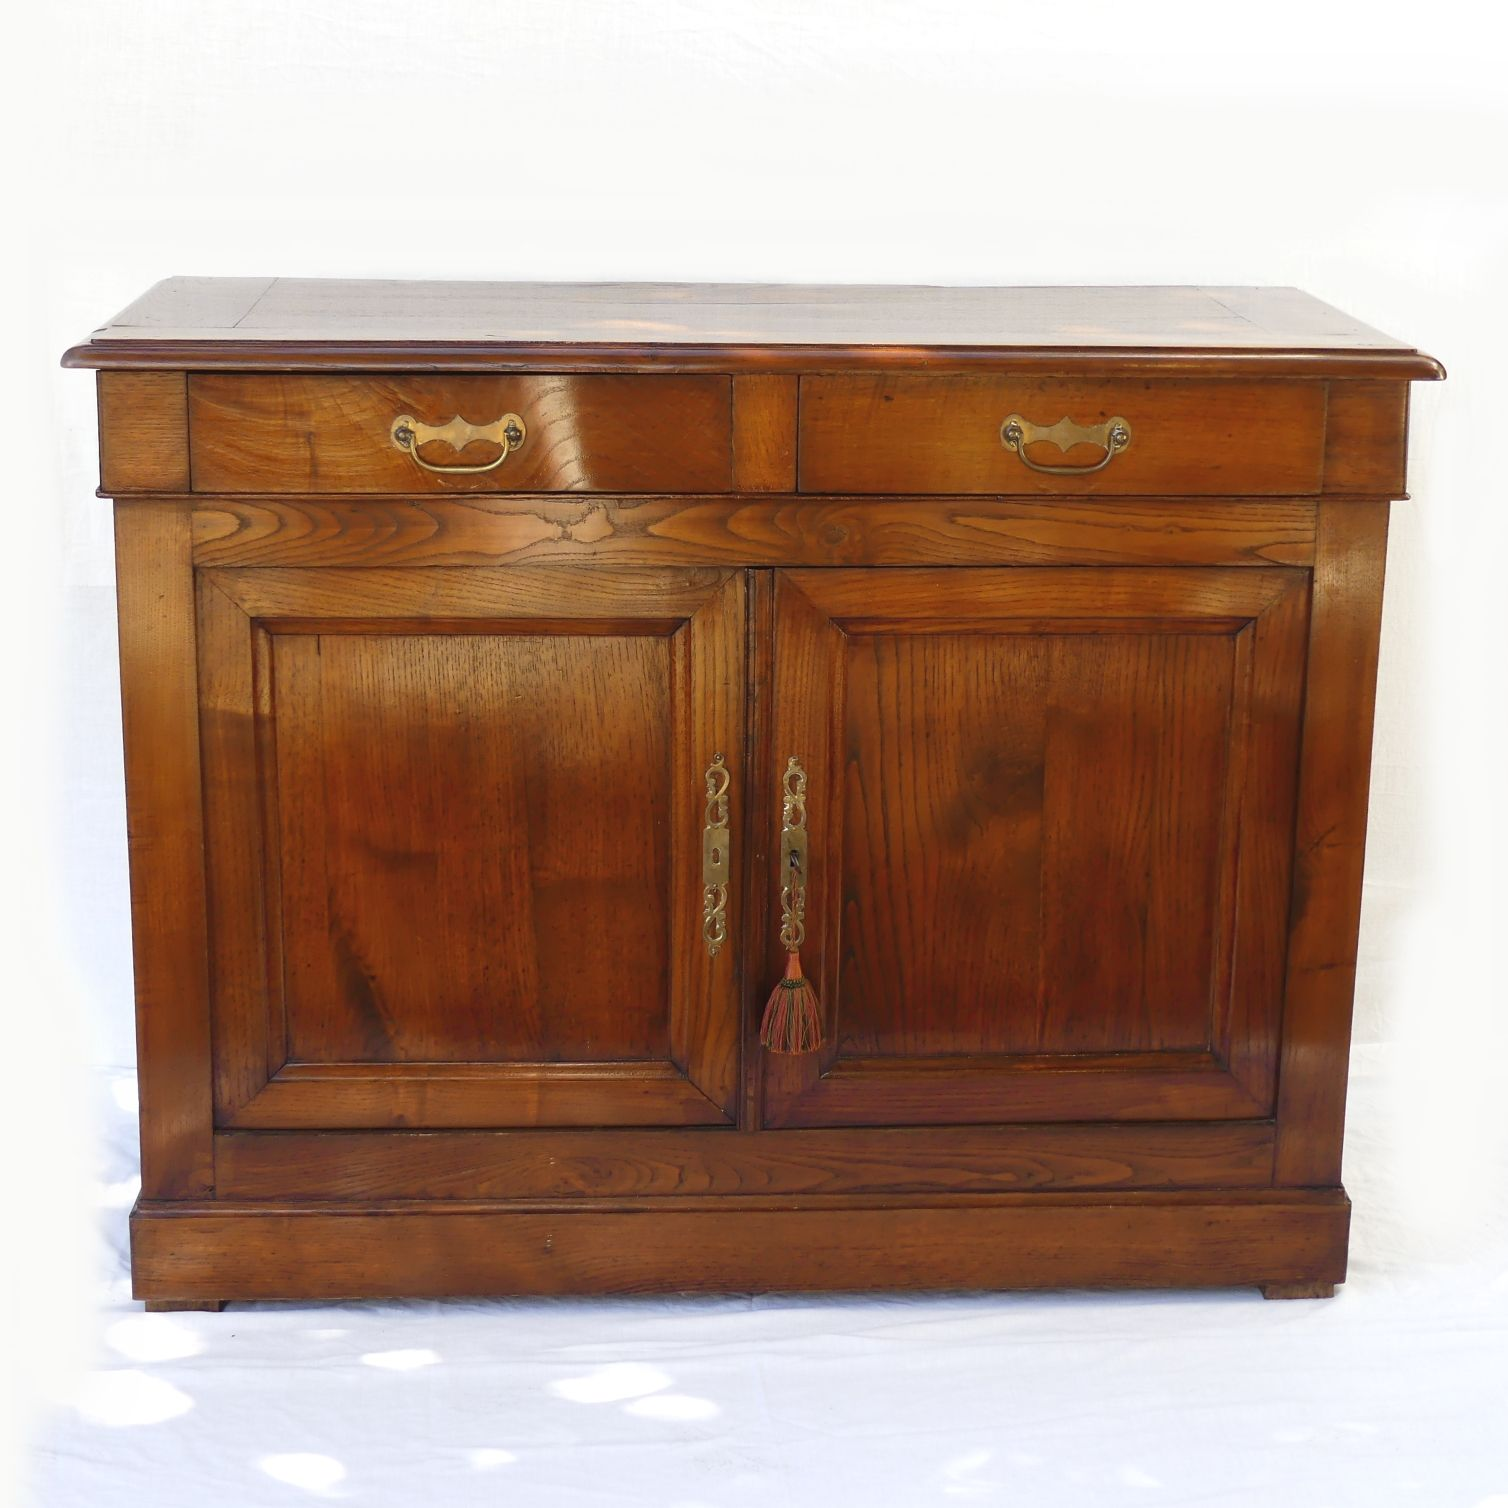 An Oak Sefton Powrie Cabinet Two Half Drawers The Panelled Doors With Decorative Br Key